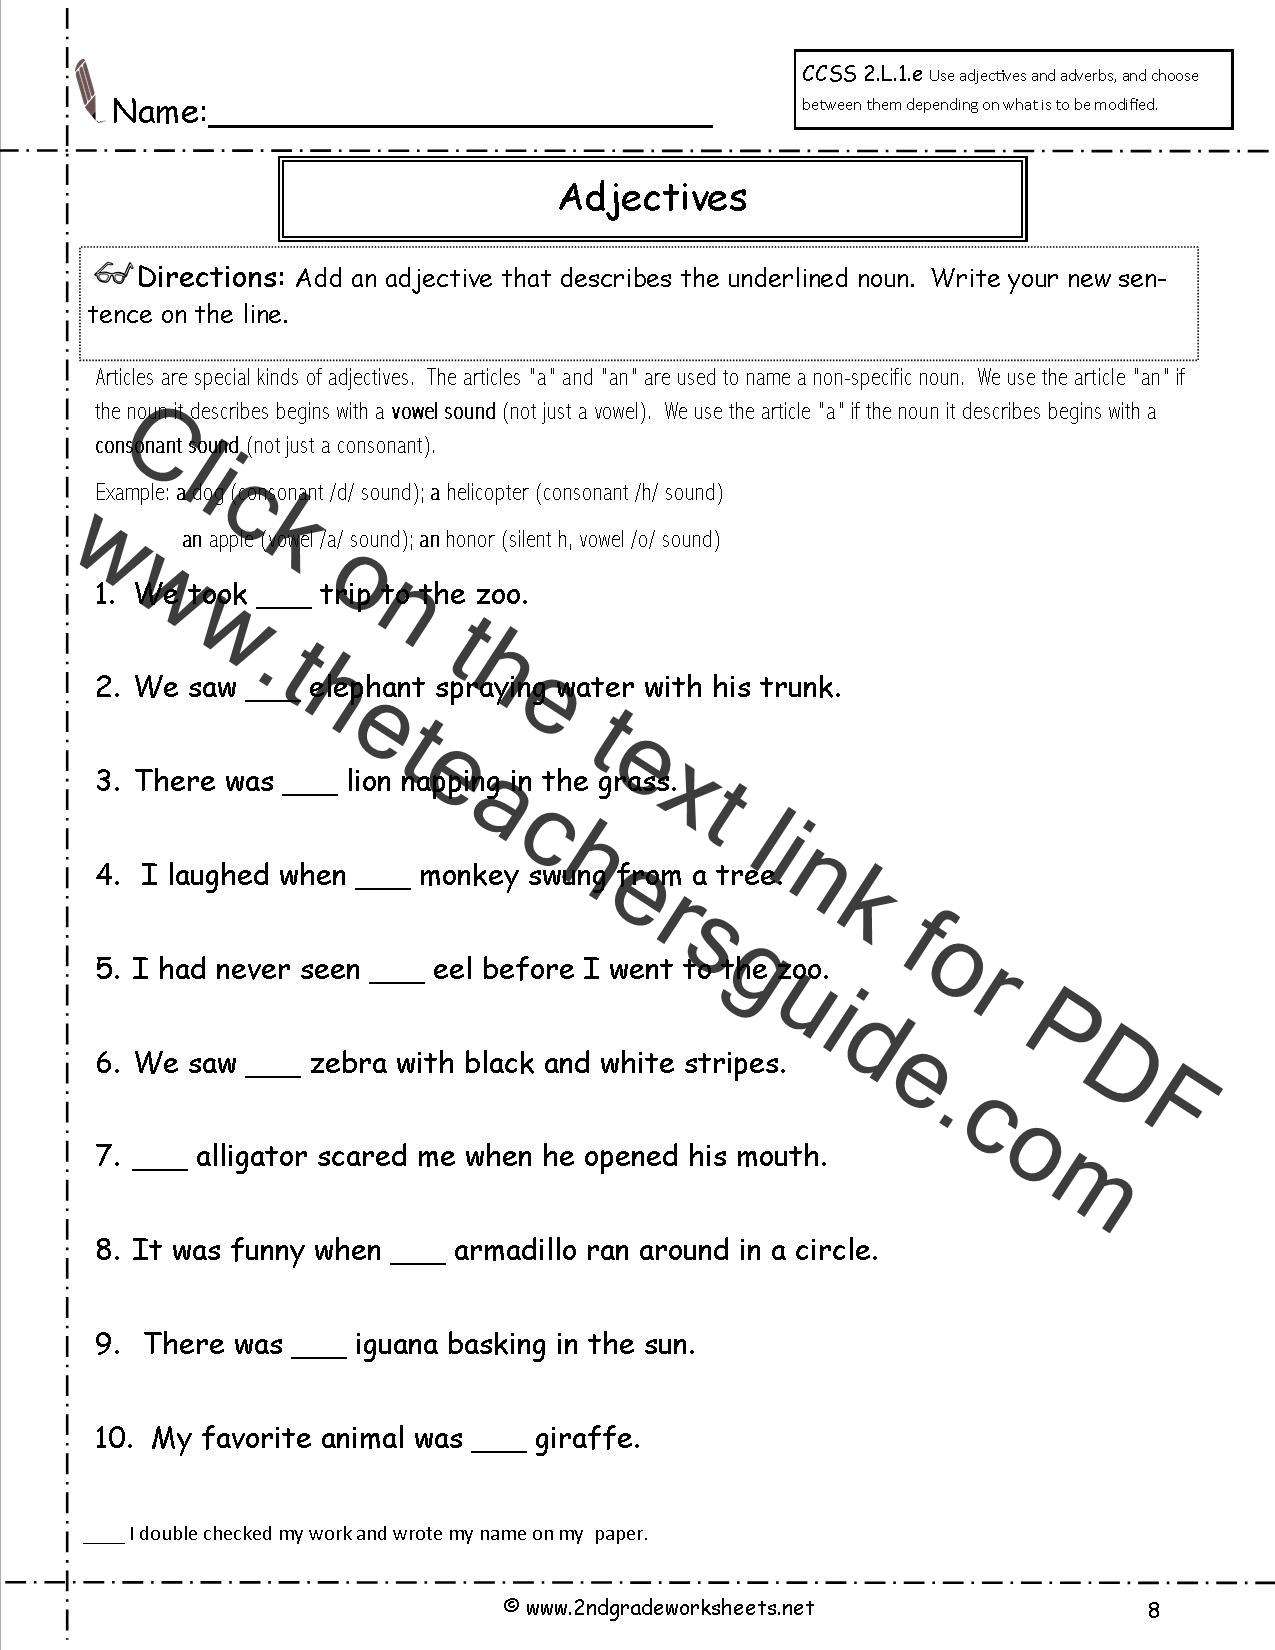 Worksheet Printable Worksheets For Grade 2 English free languagegrammar worksheets and printouts adjectives worksheets